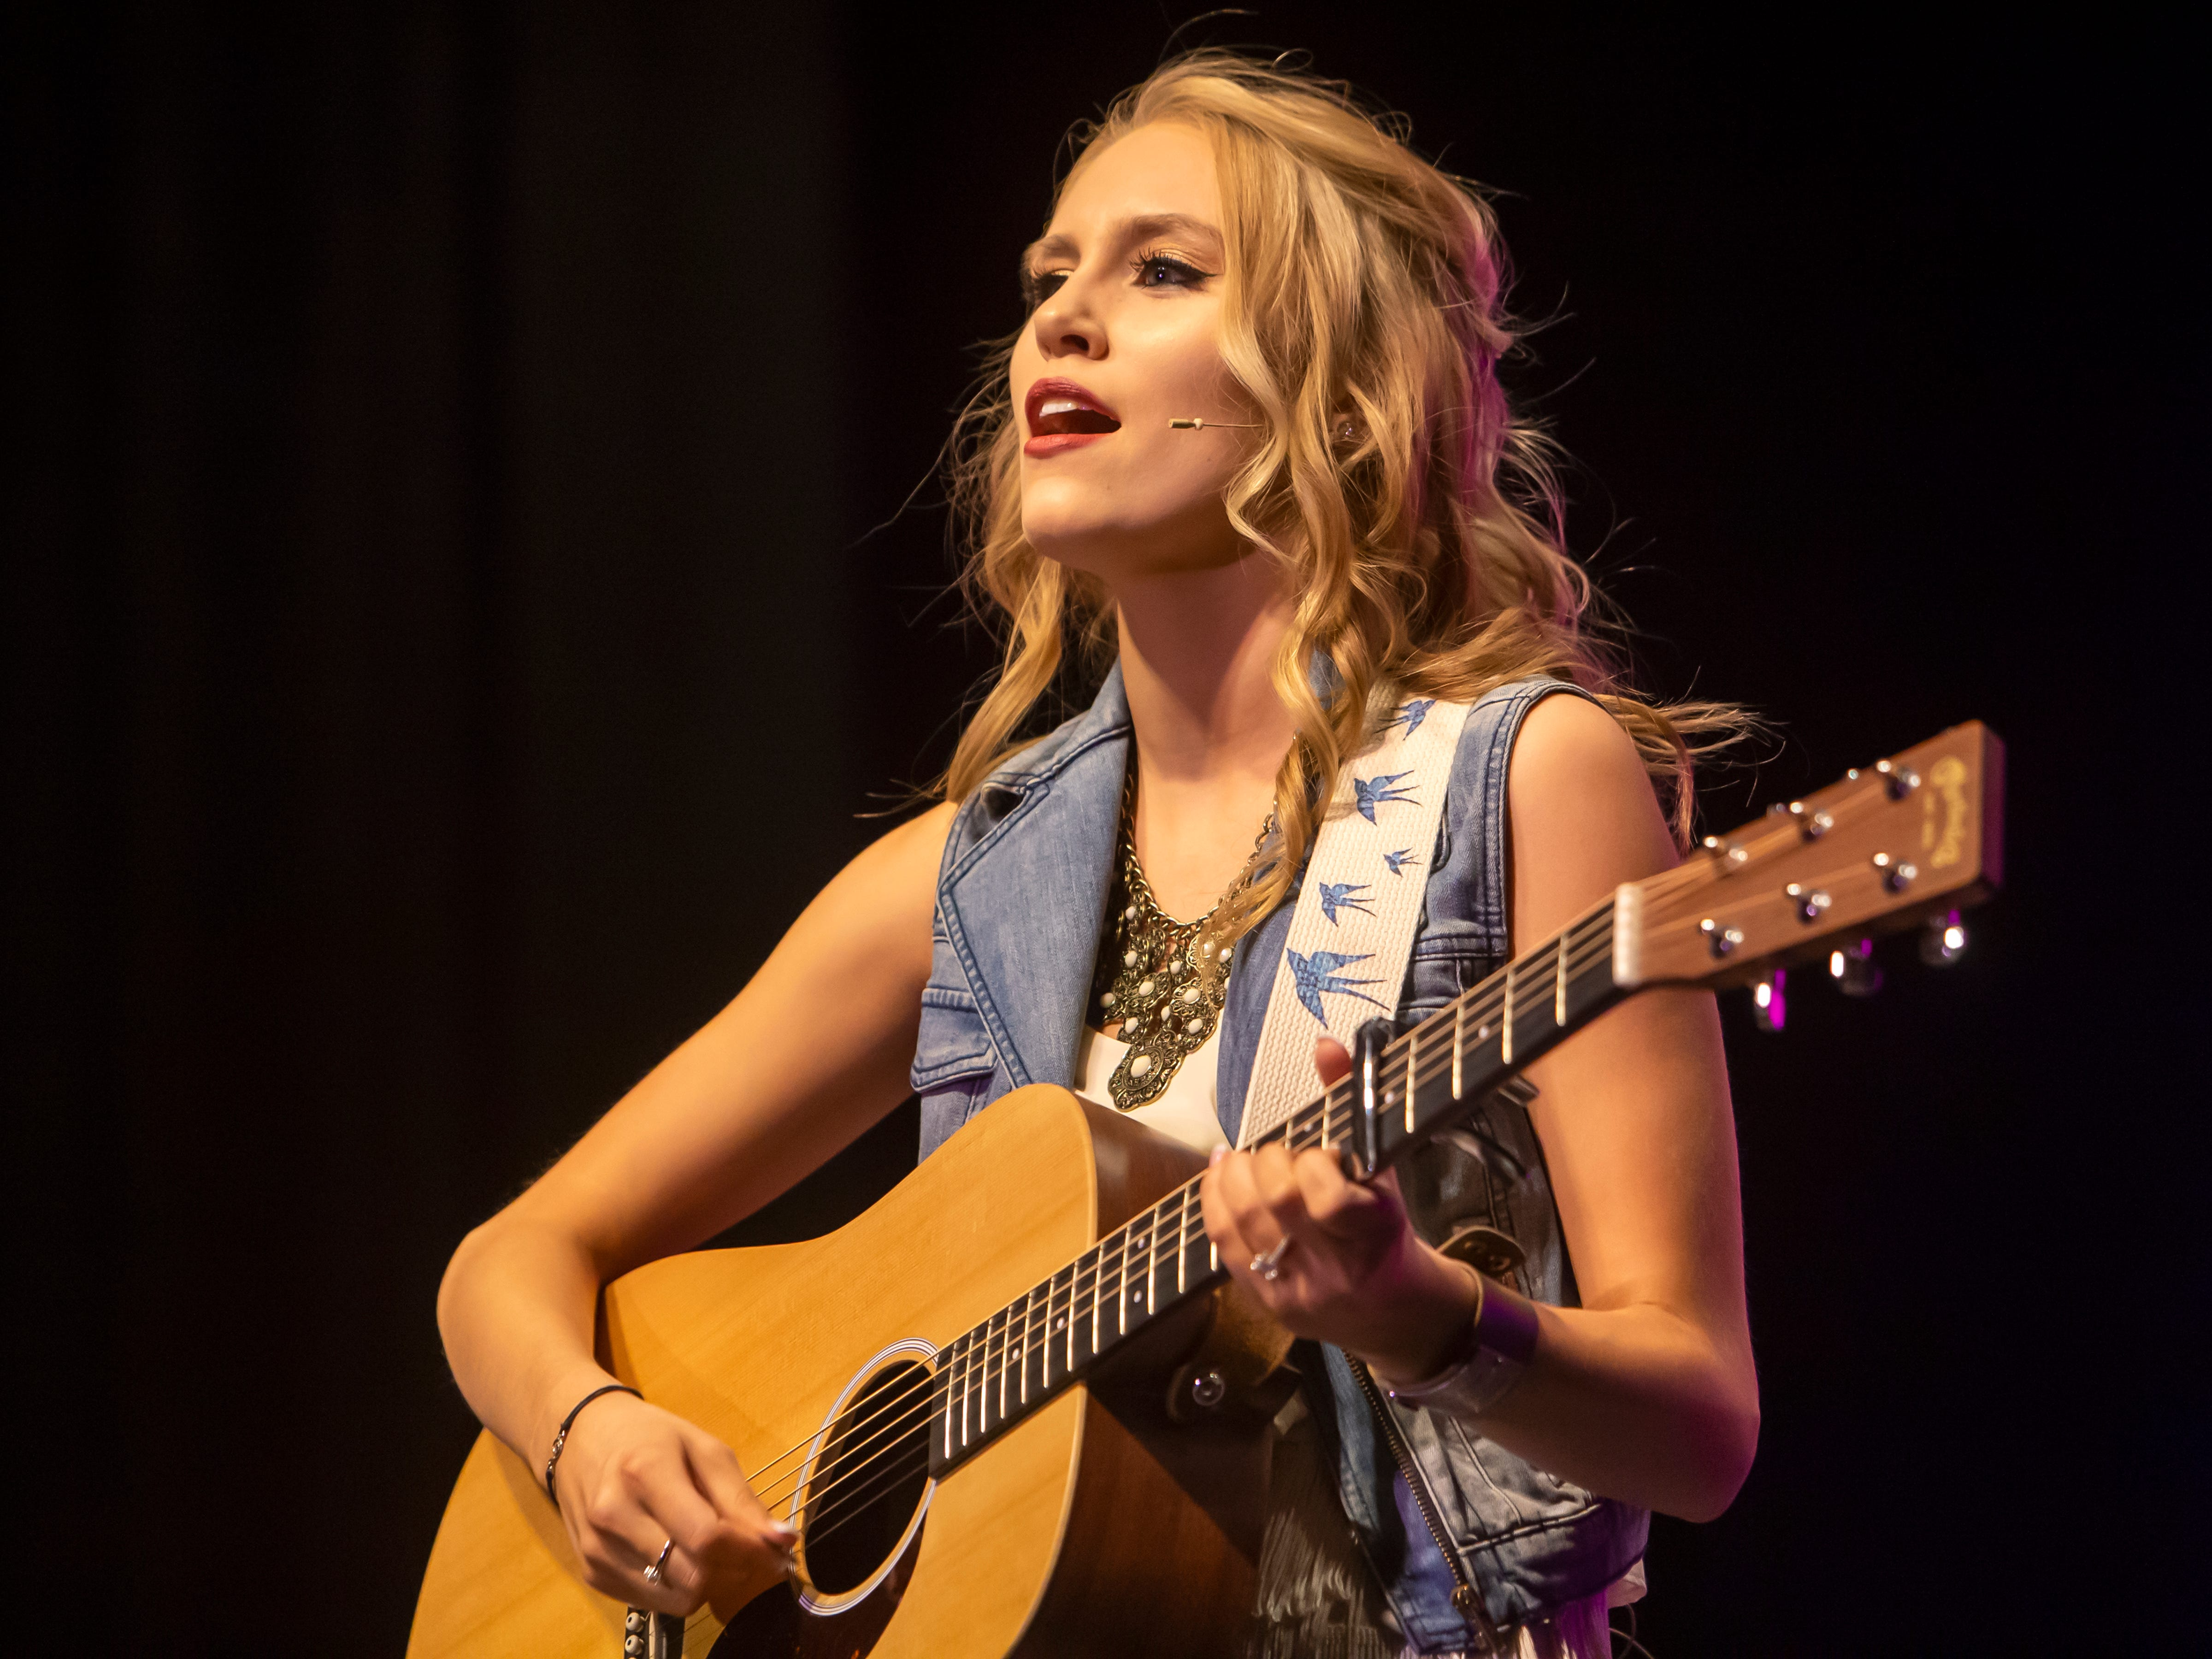 Cari Beilfuss sings and plays guitar in the talent portion of the Miss Oshkosh Scholarship Pageant Saturday, March 2, 2019, at Alberta Kimball Auditorium in Oshkosh, Wis.